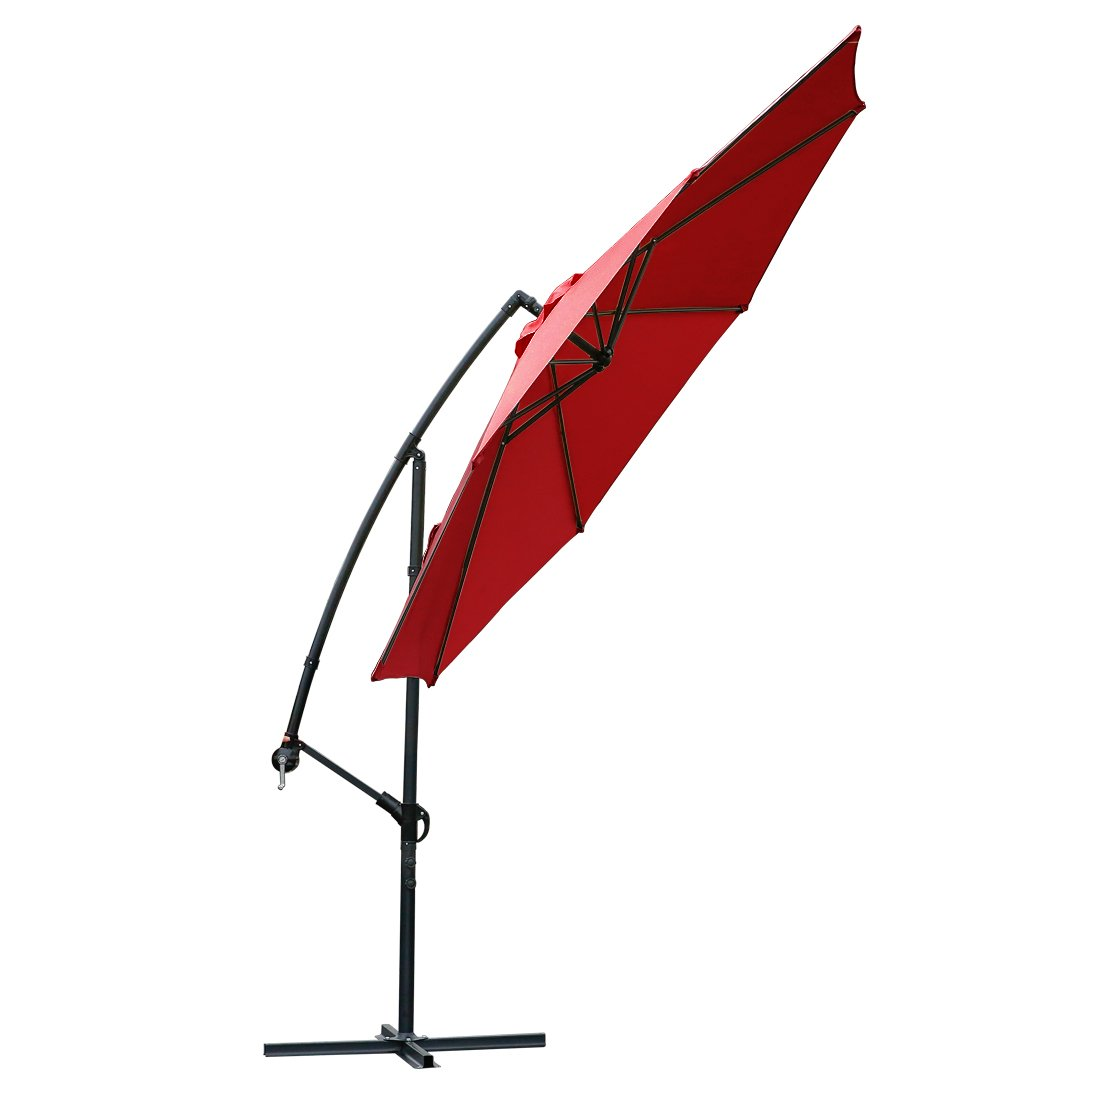 10 ft offset cantilever patio umbrella outdoor market hanging umbrellas & cranks with cross base, 8 ribs (10 ft, Red)   B073W6CFTW